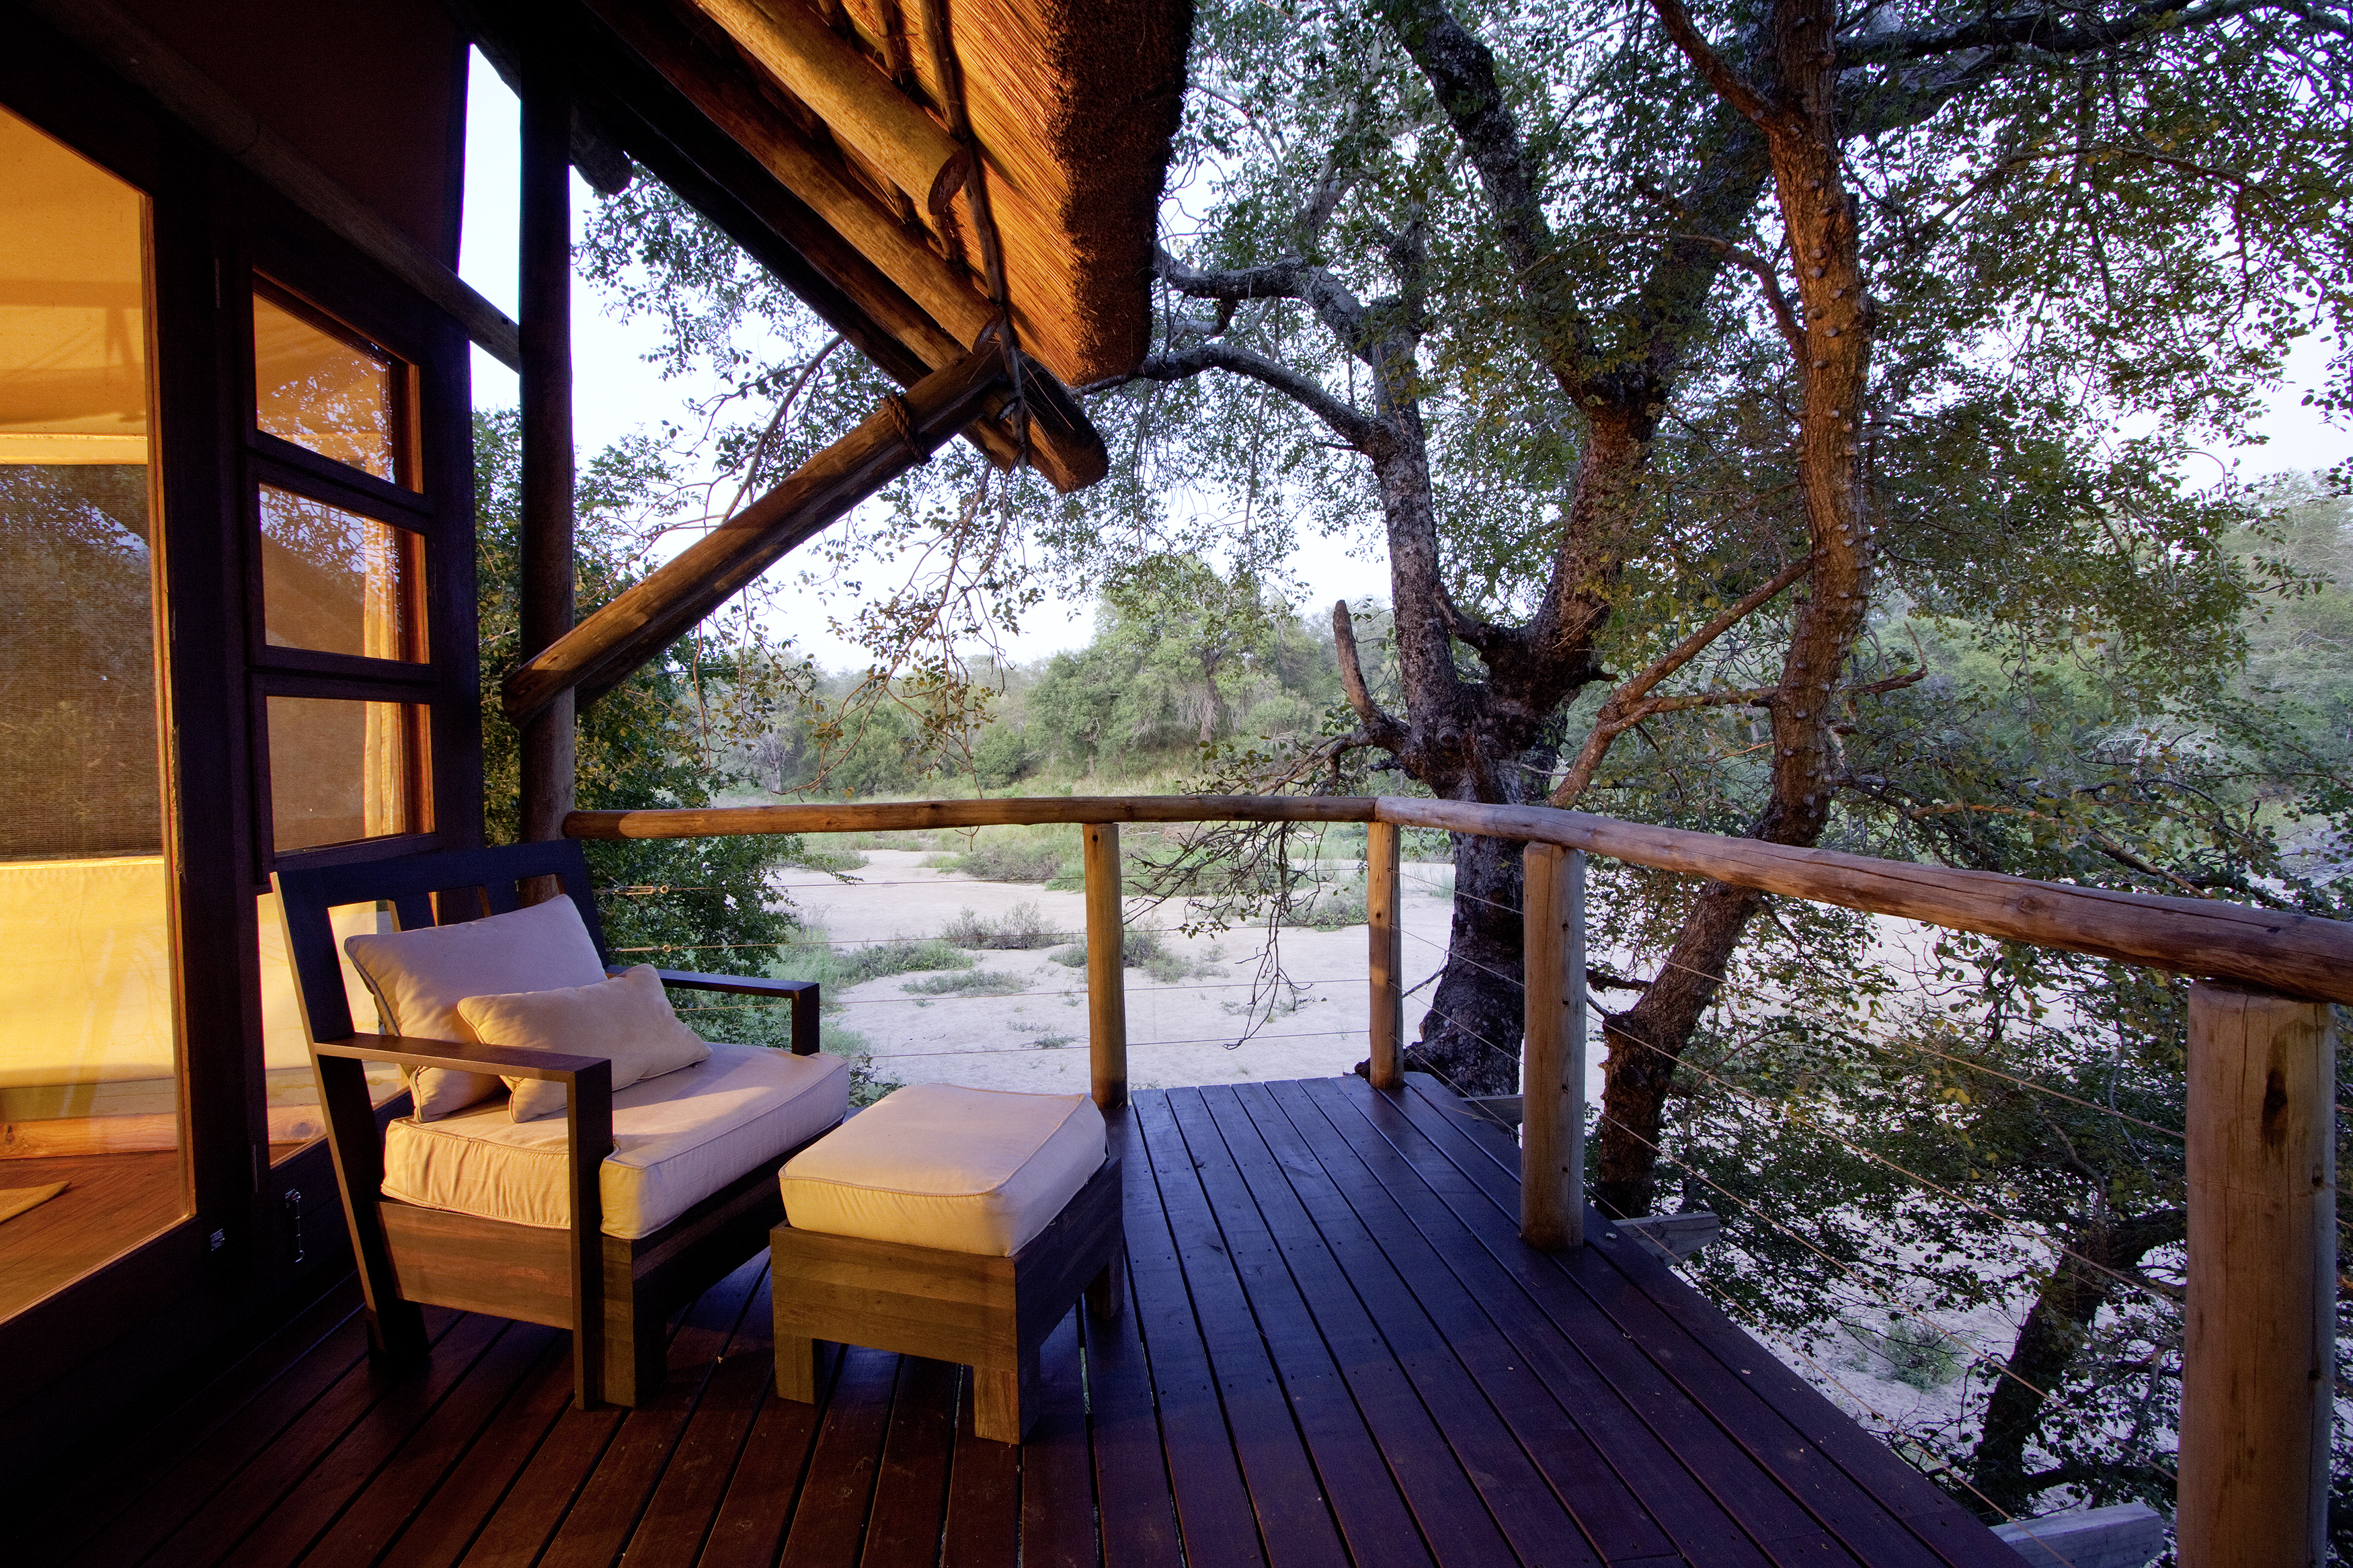 The oh-so-lovely, award-winning Rhino Post Safari Lodge, managed by Nikki Meyer